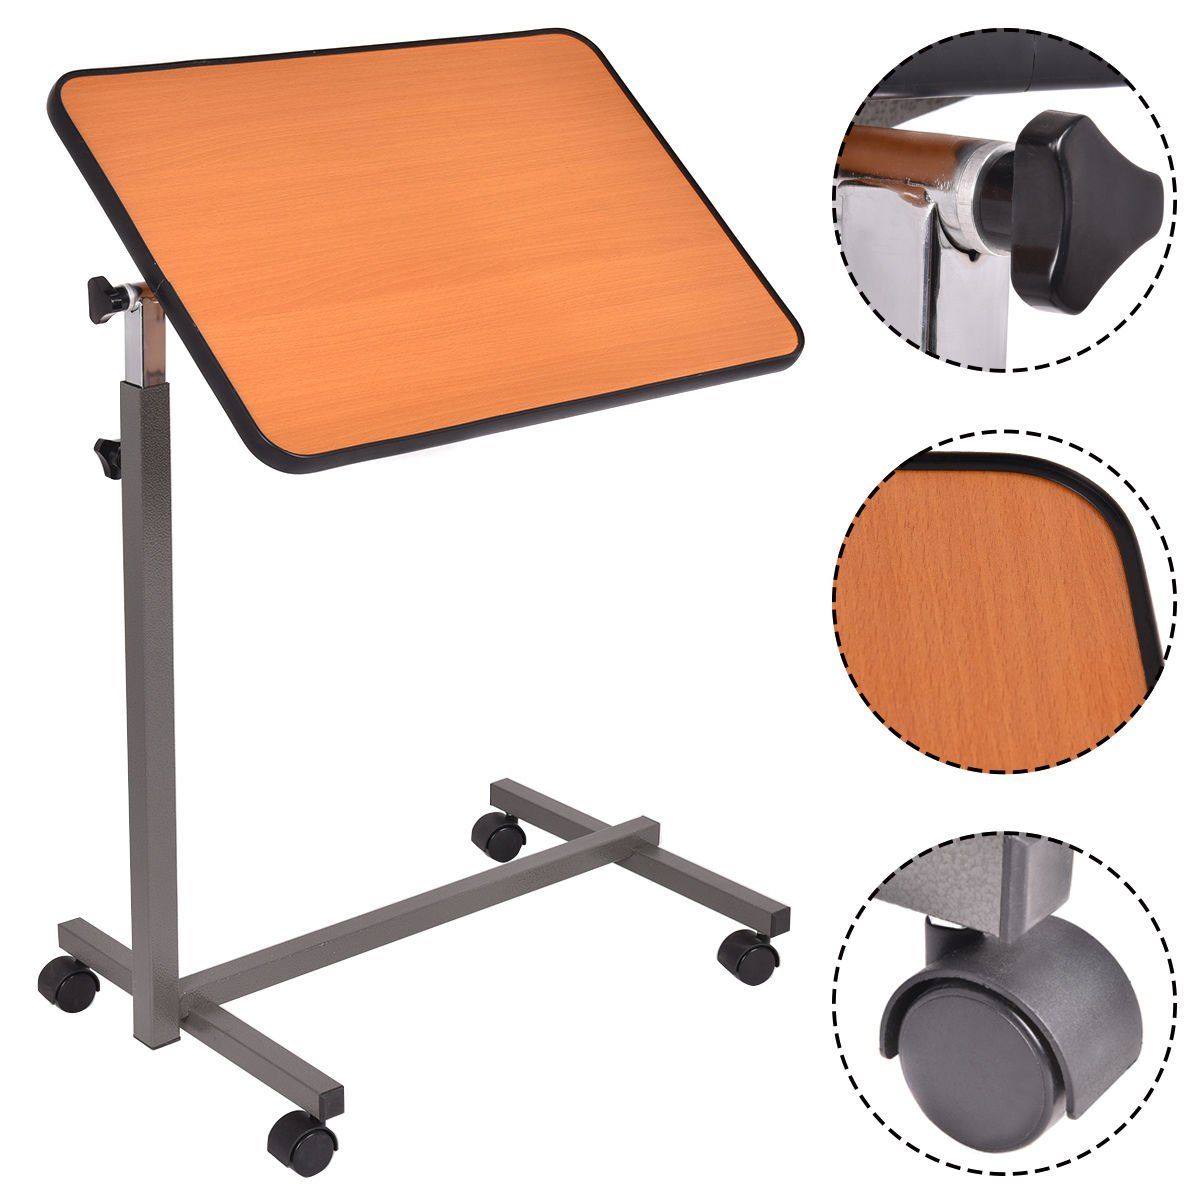 Overbed table food tray non tilt top bed hospital adjustable rolling - Amazon Com Overbed Rolling Table Over Bed Laptop Food Tray Hospital Desk With Tilting Top Office Products